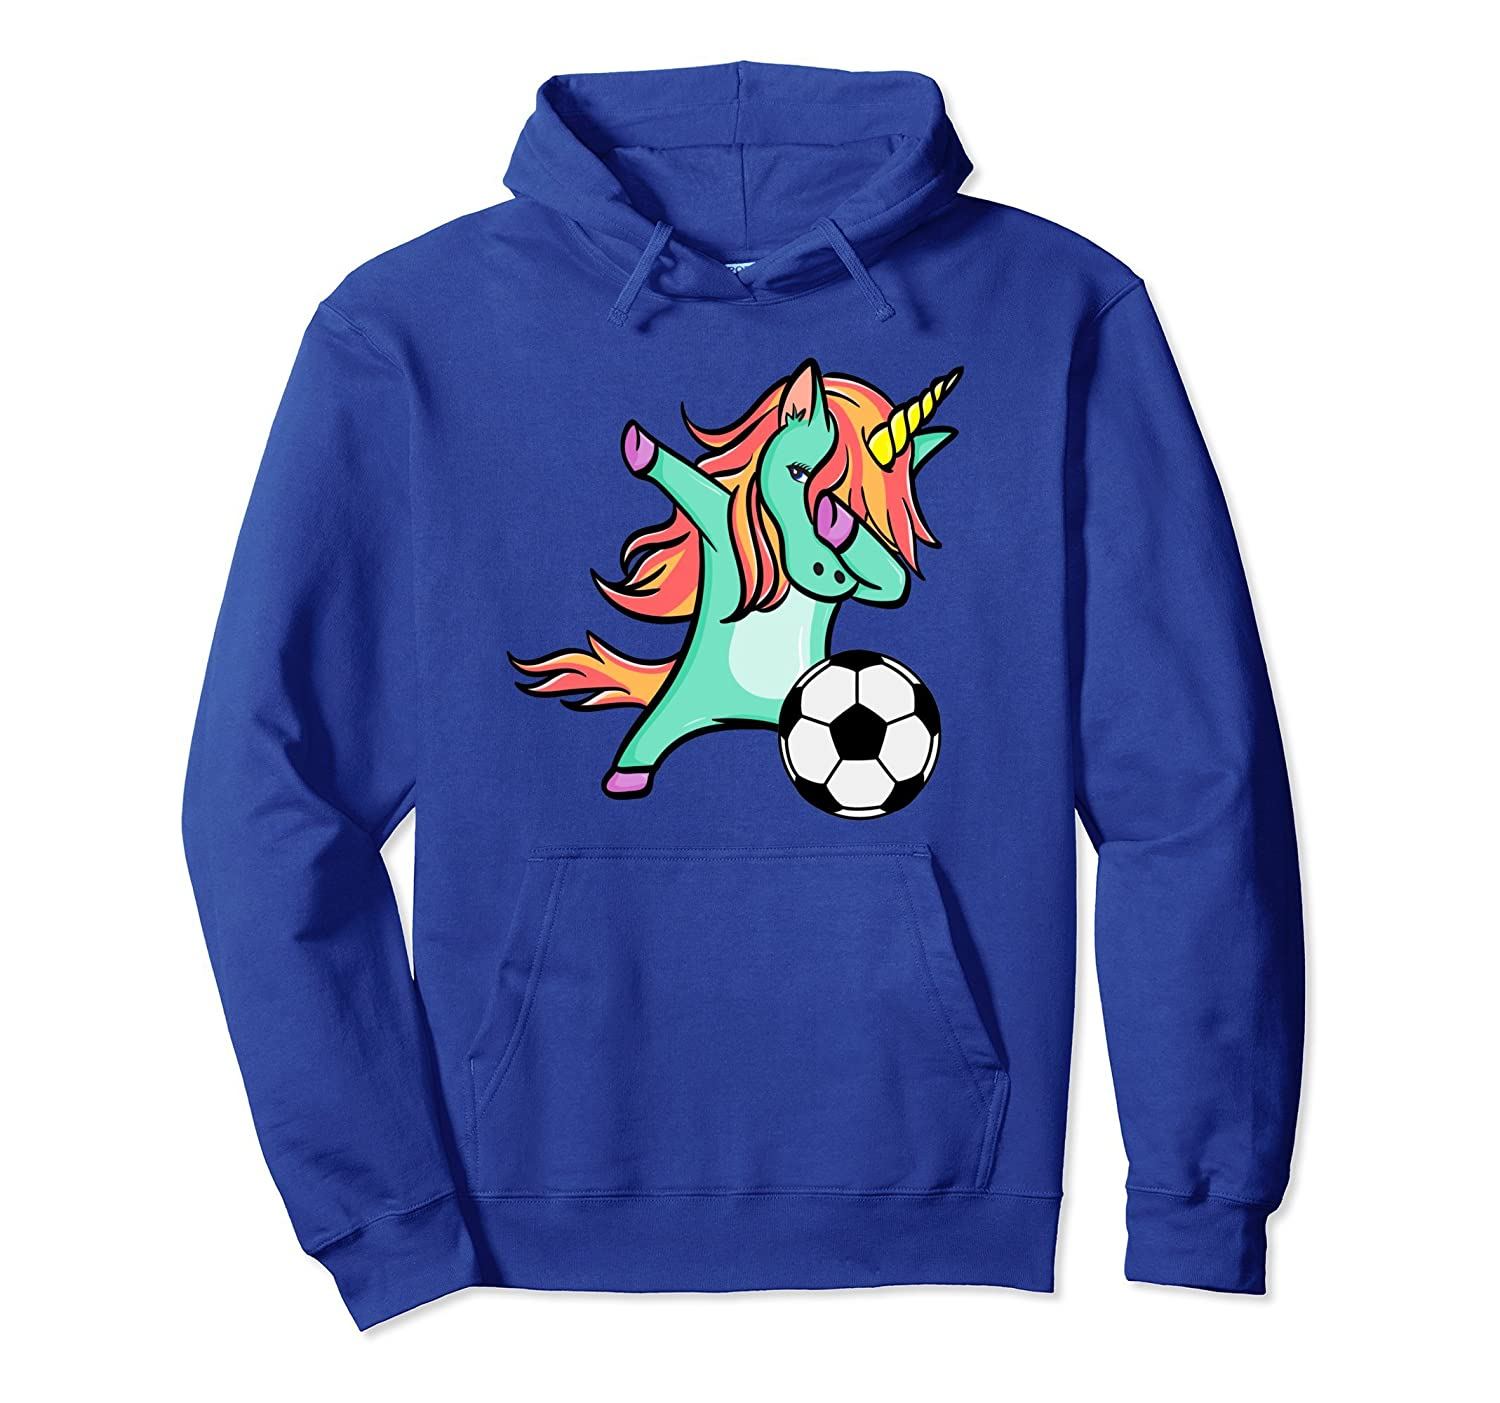 d140d71f838 Funny Soccer Shirts Dabbing Unicorn Hoodie Sports Lover Gift-prm – Paramatee